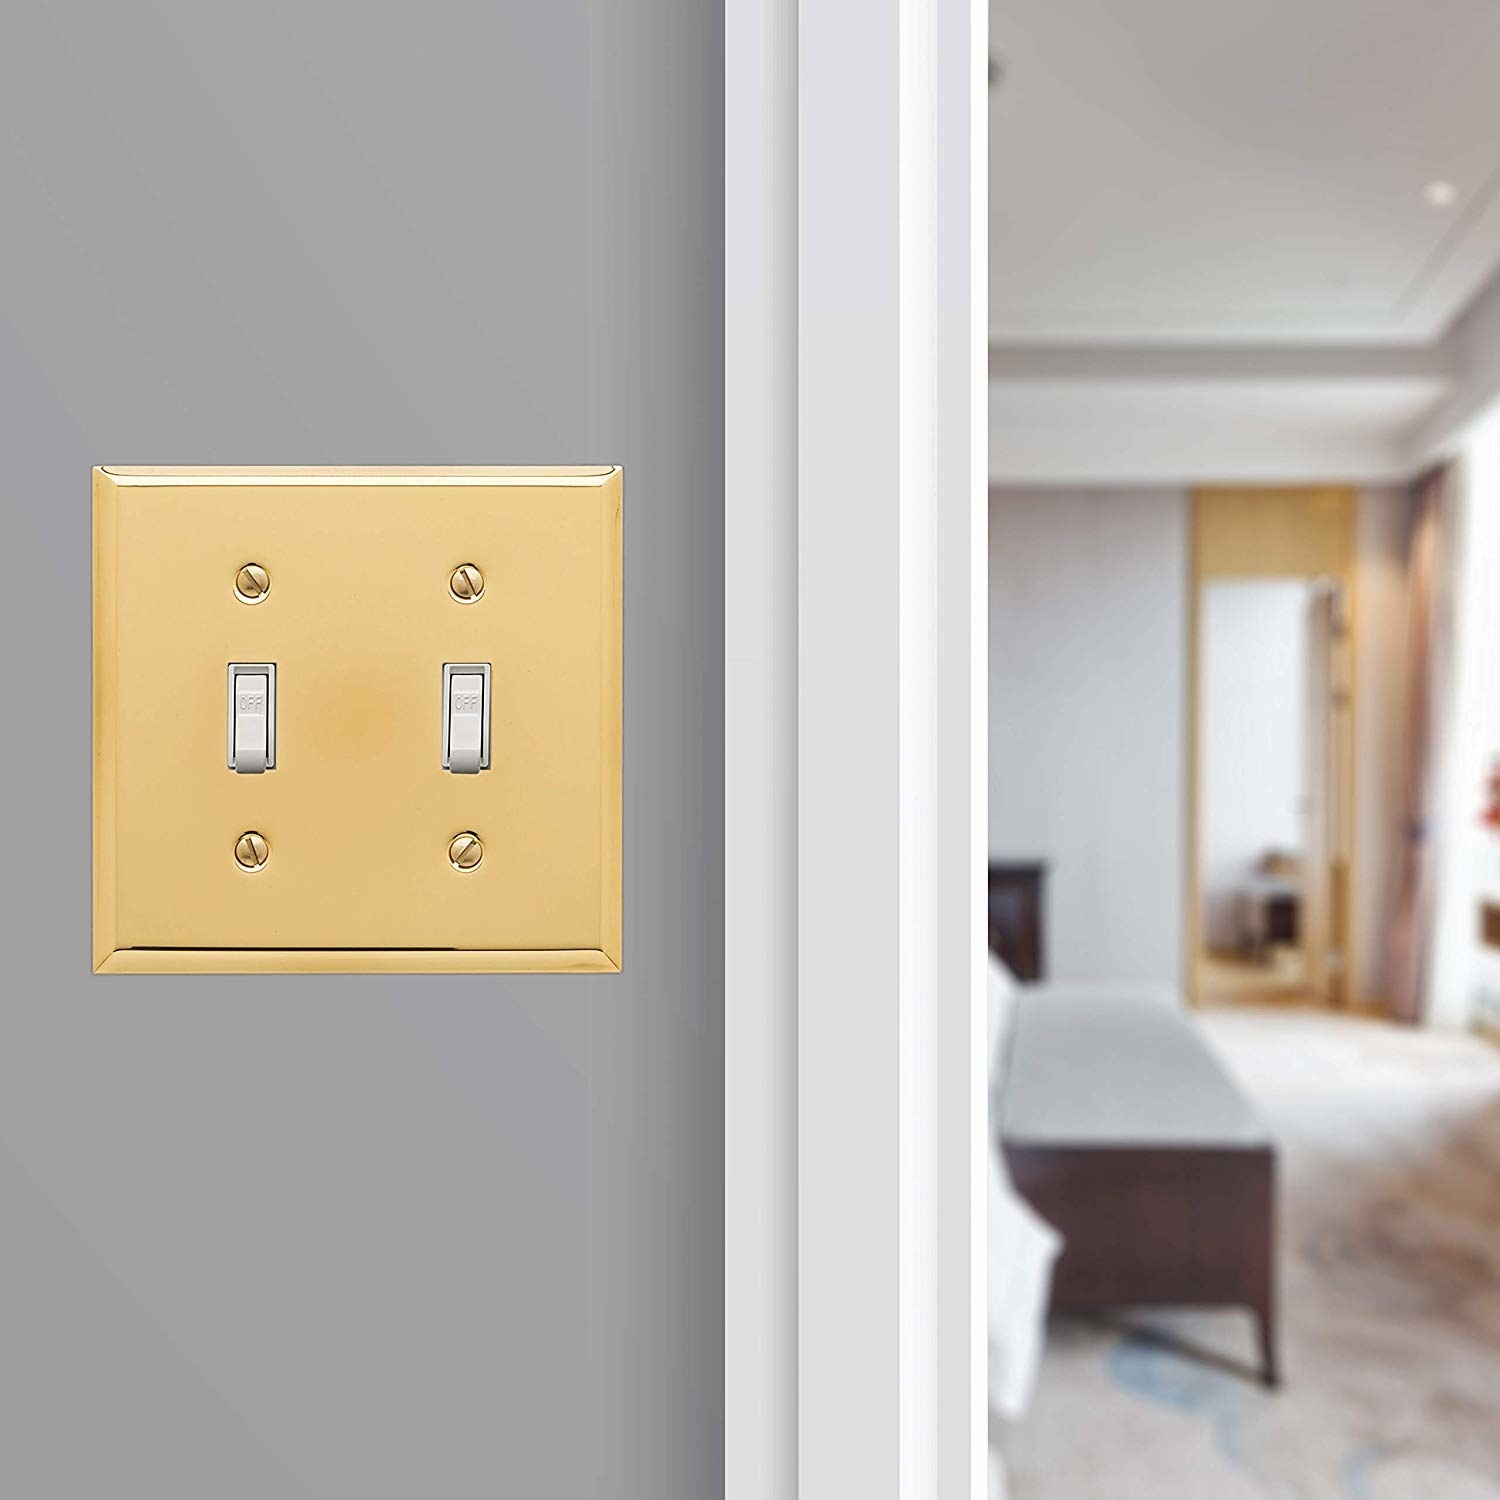 The gold cover over double light switches